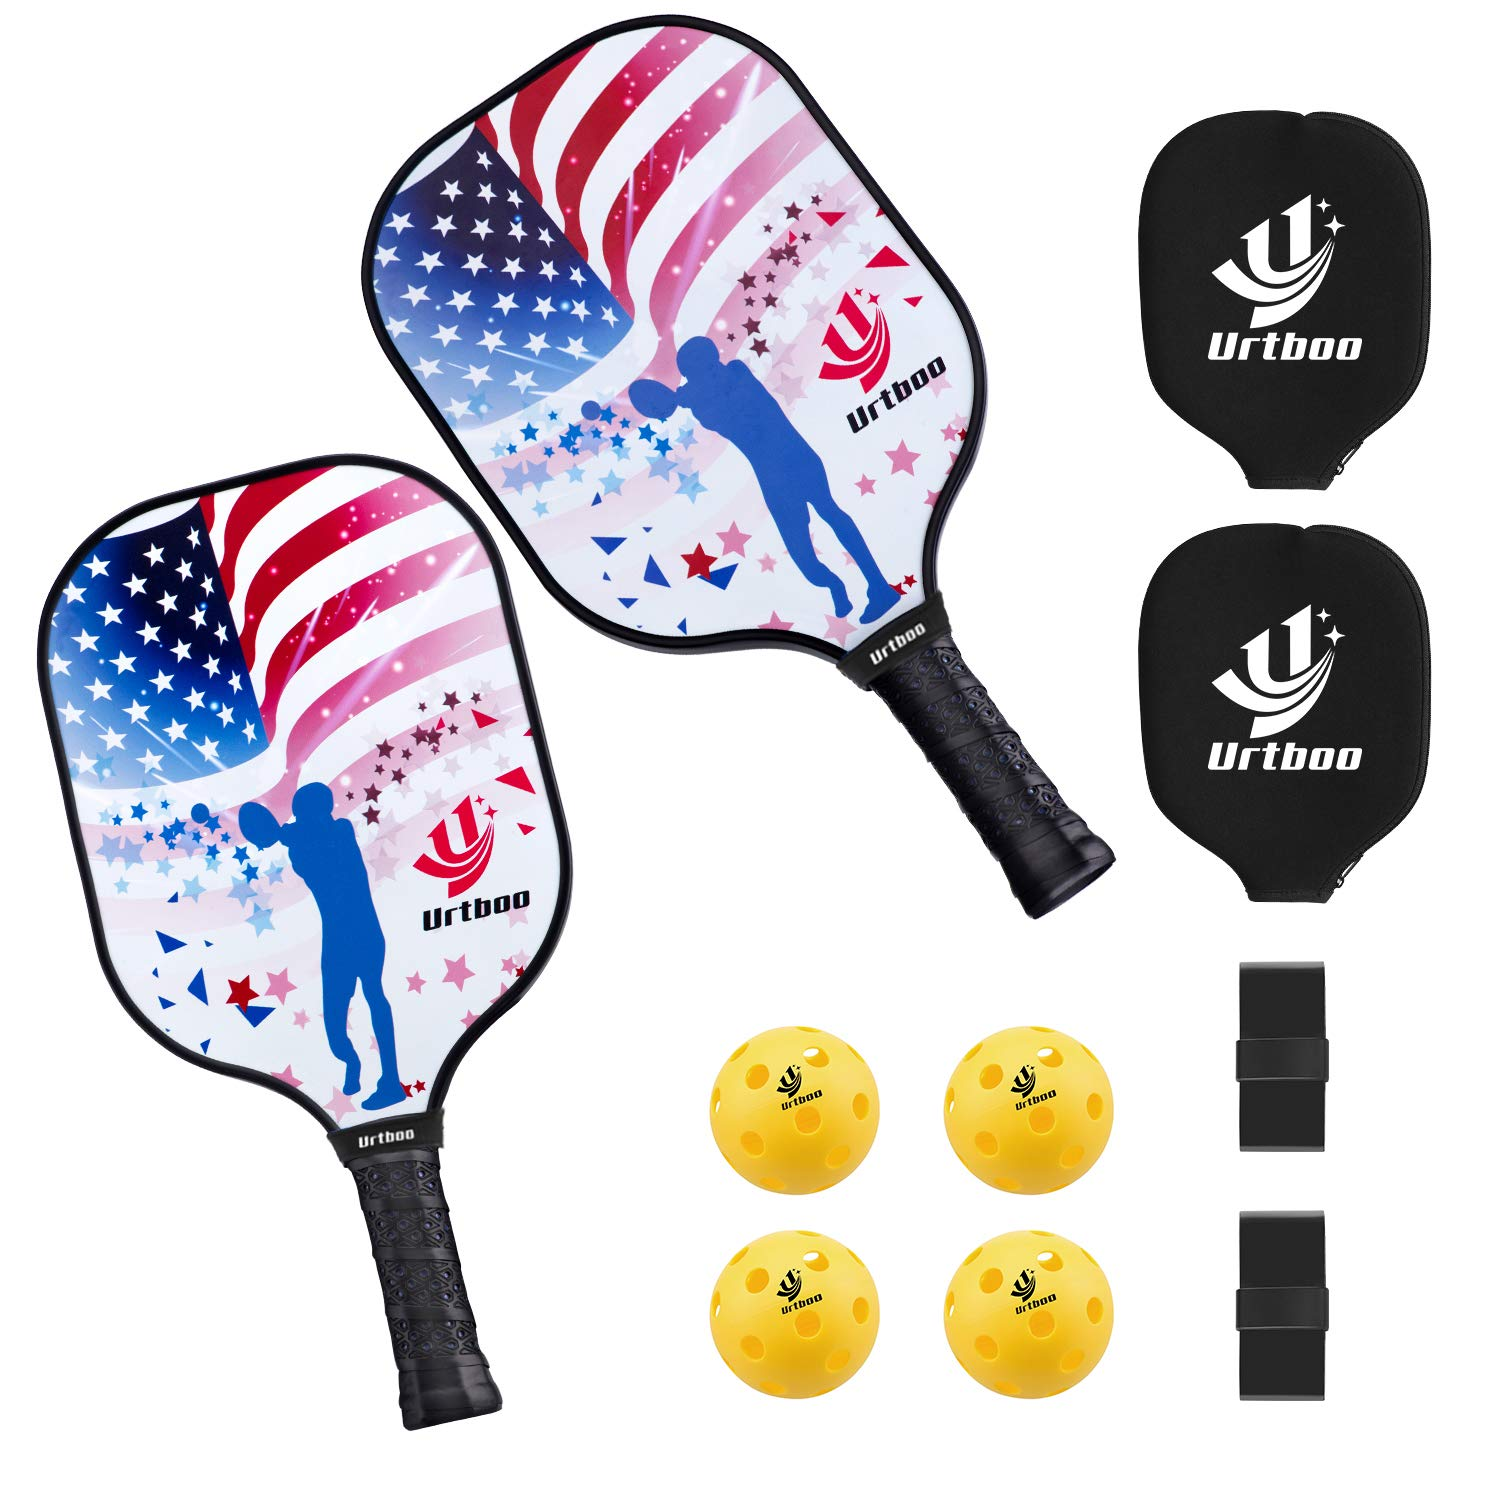 Urtboo Pickleball Paddle Rackets, Graphite Pickleball Sets Graphite Face Honeycomb Composite Core Low Edge Guard Premium Grip Light Weight 7.8 OZ,Pickleball Racket Good Choice for Beginner&Pro by Urtboo